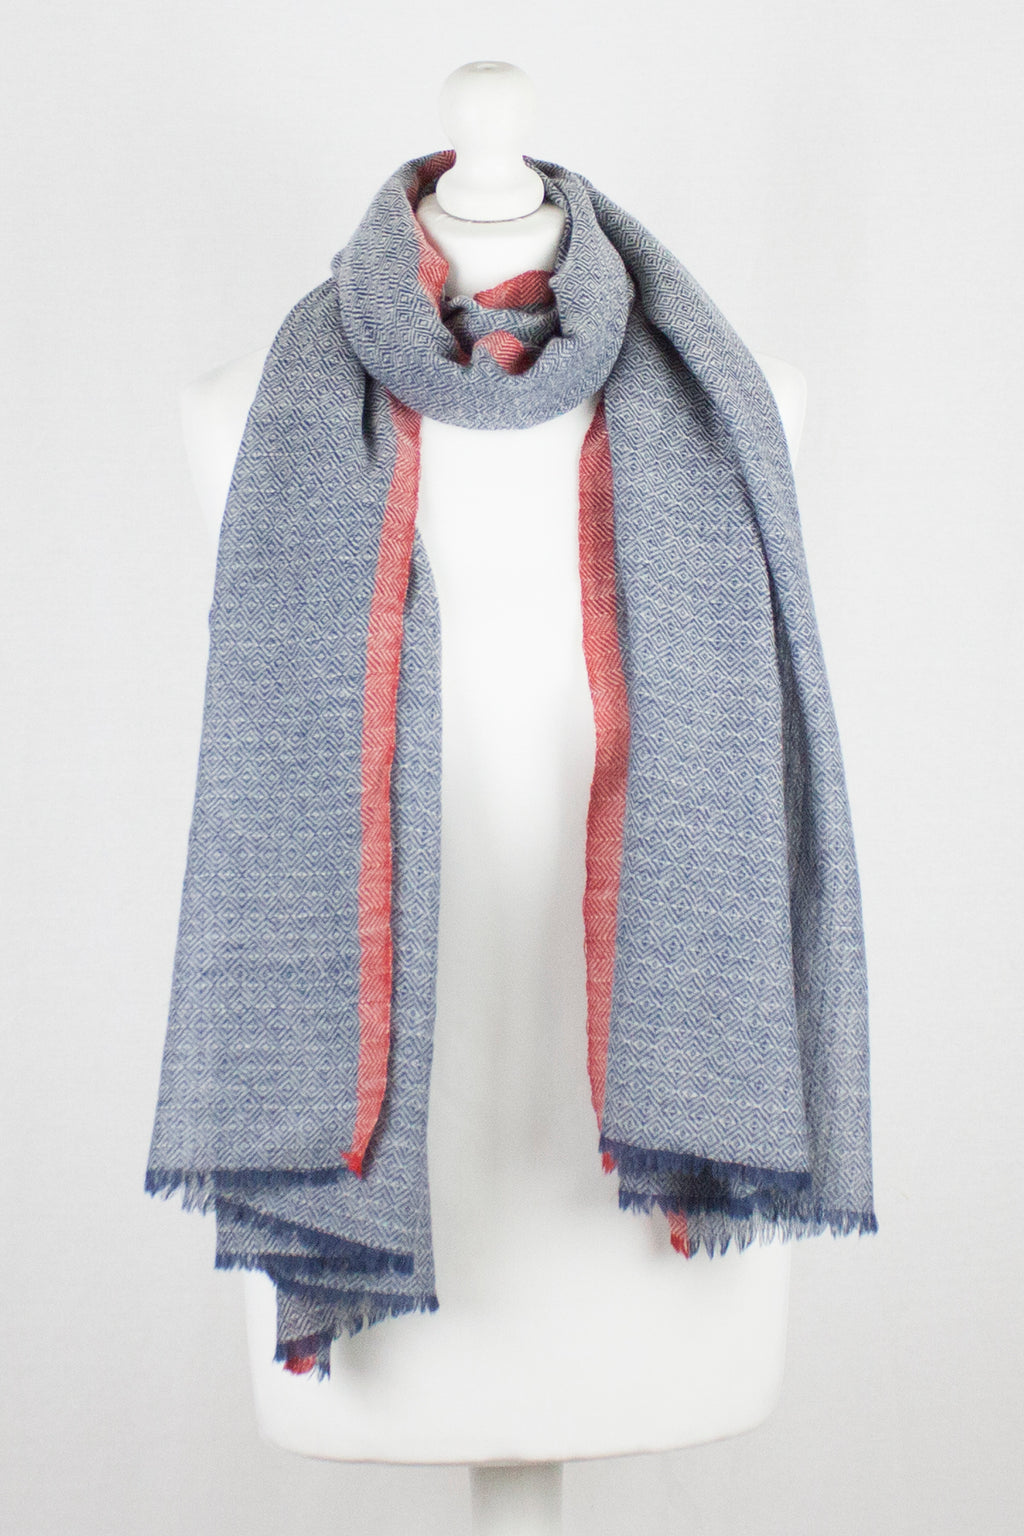 Diamond Weave Two Tone Merino Wool Scarf - Chambray Blue